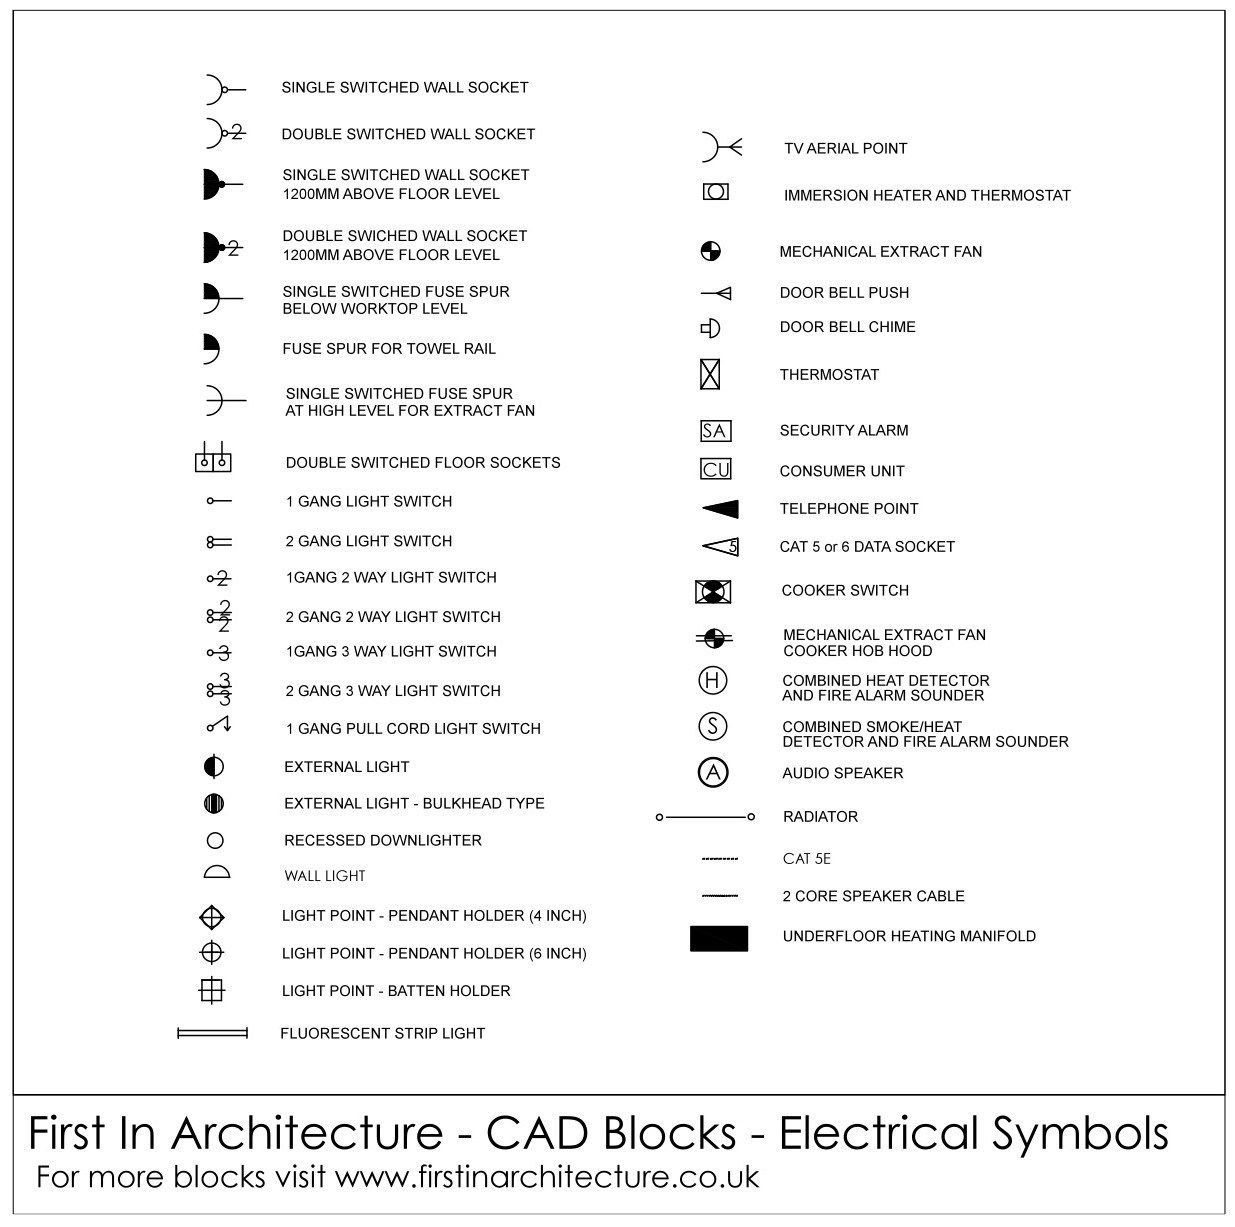 Cca C Ca F Dd Electrical Symbols Circuit Diagram together with E F A Cf Aea Afd E Electrical Symbols Electrical Engineering together with Electronic Circuits Symbols additionally Floor Plan Symbols Pdf Nice Drafting Electrical Symbols further Image. on home electrical wiring symbol chart